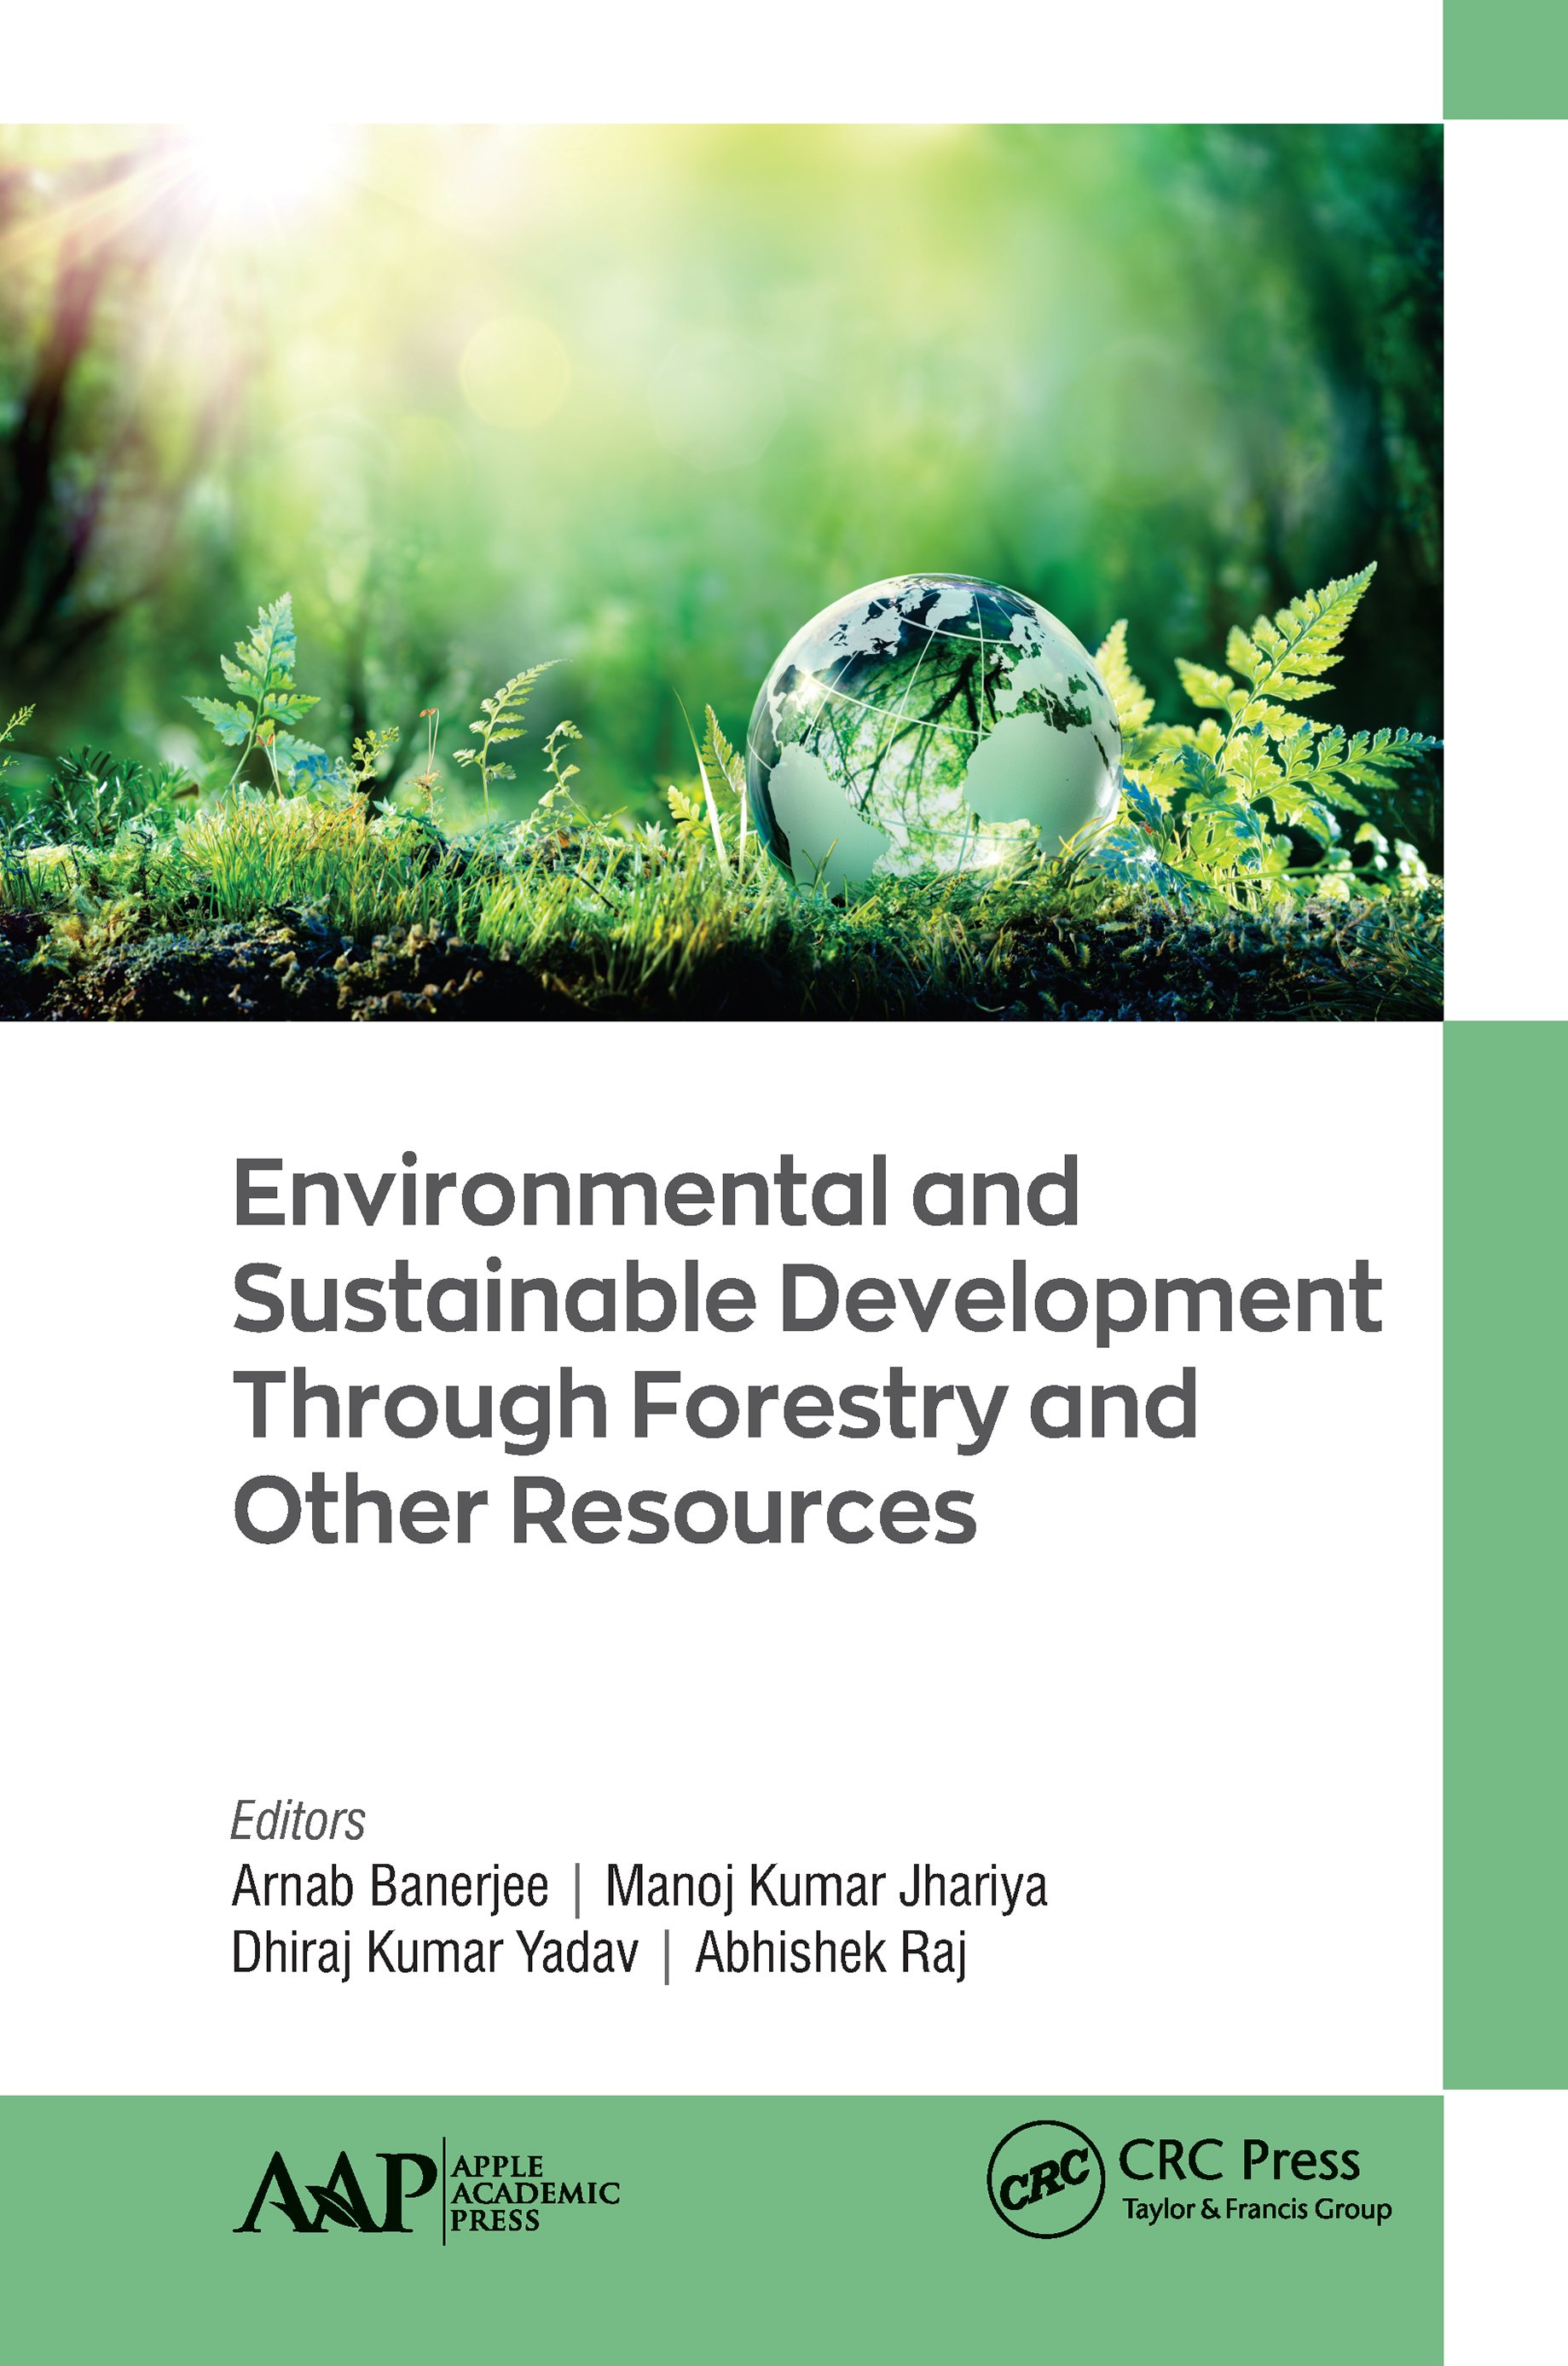 Environmental and Sustainable Development Through Forestry and Other Resources book cover